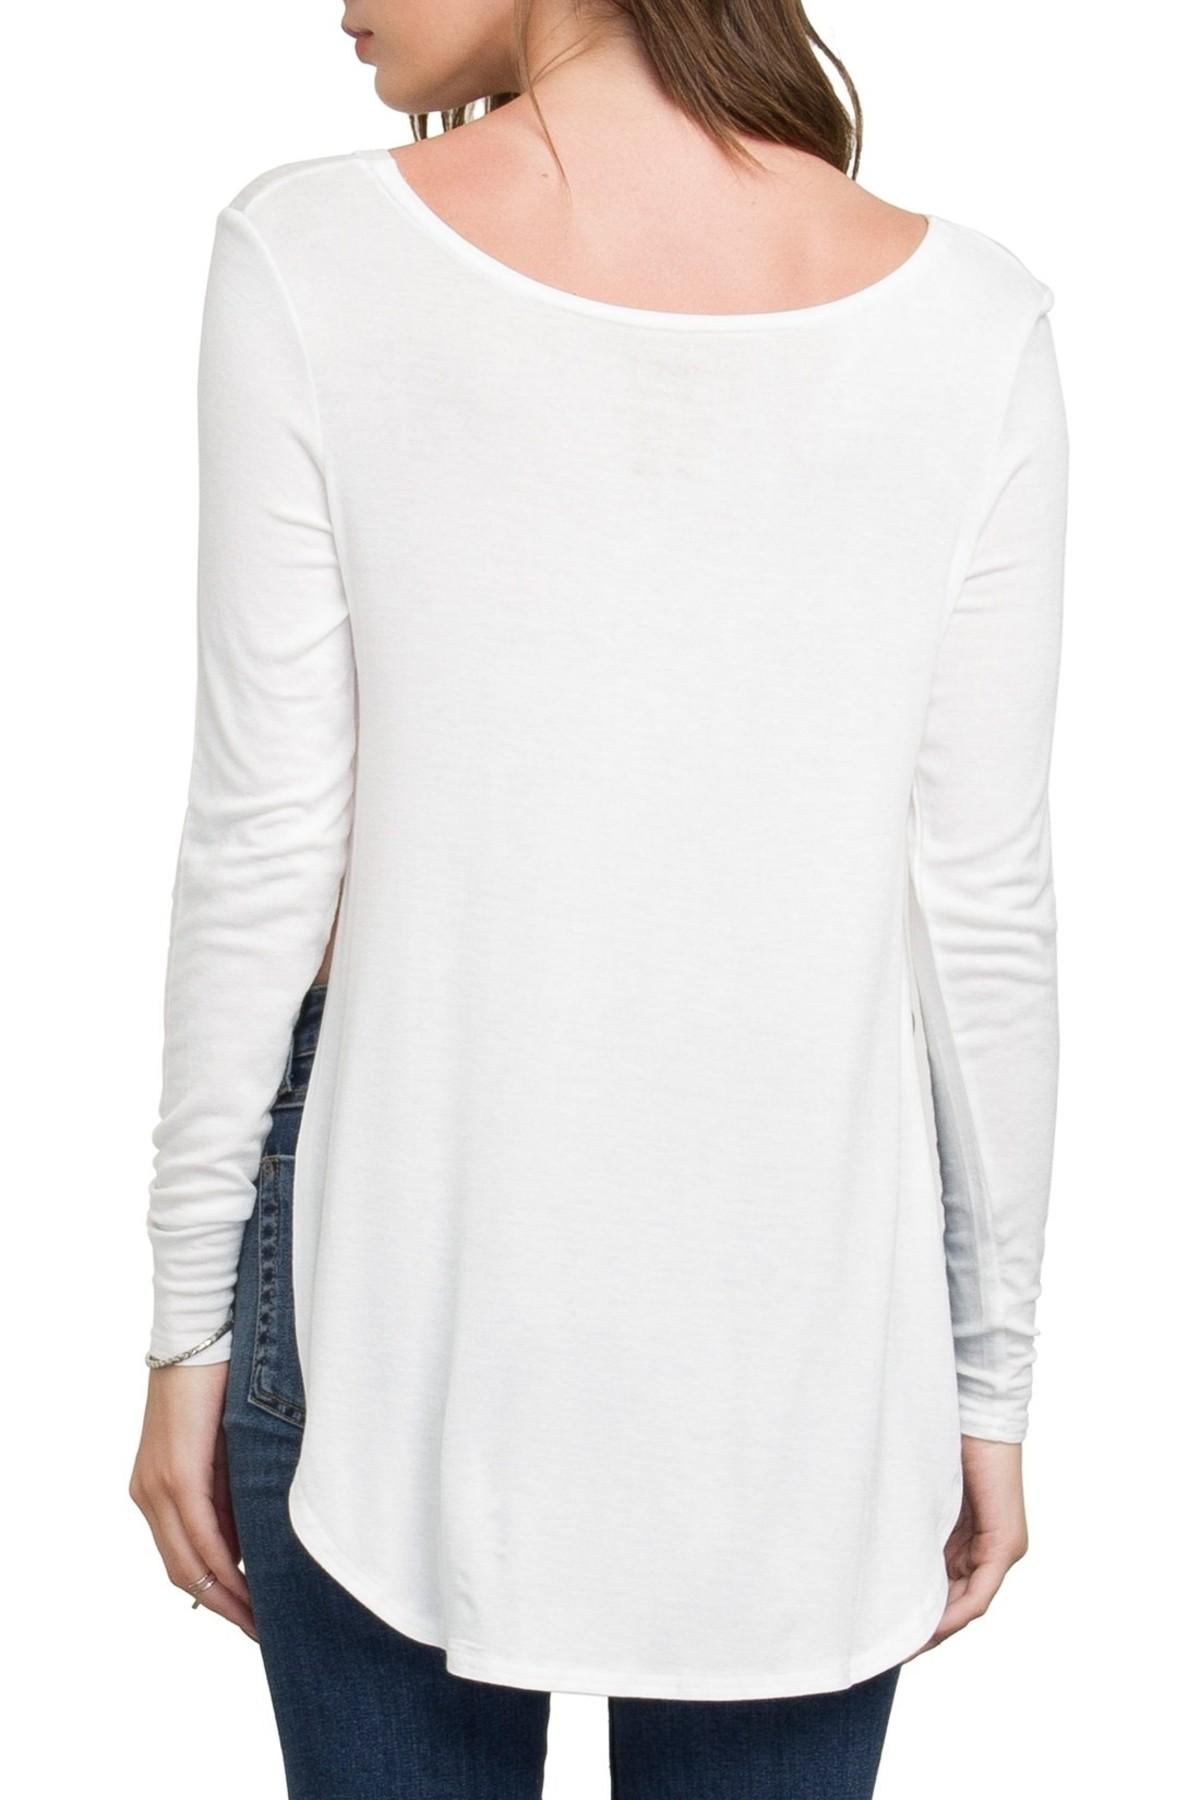 Rvca high end 3 long sleeve tee in white lyst for High end white t shirts